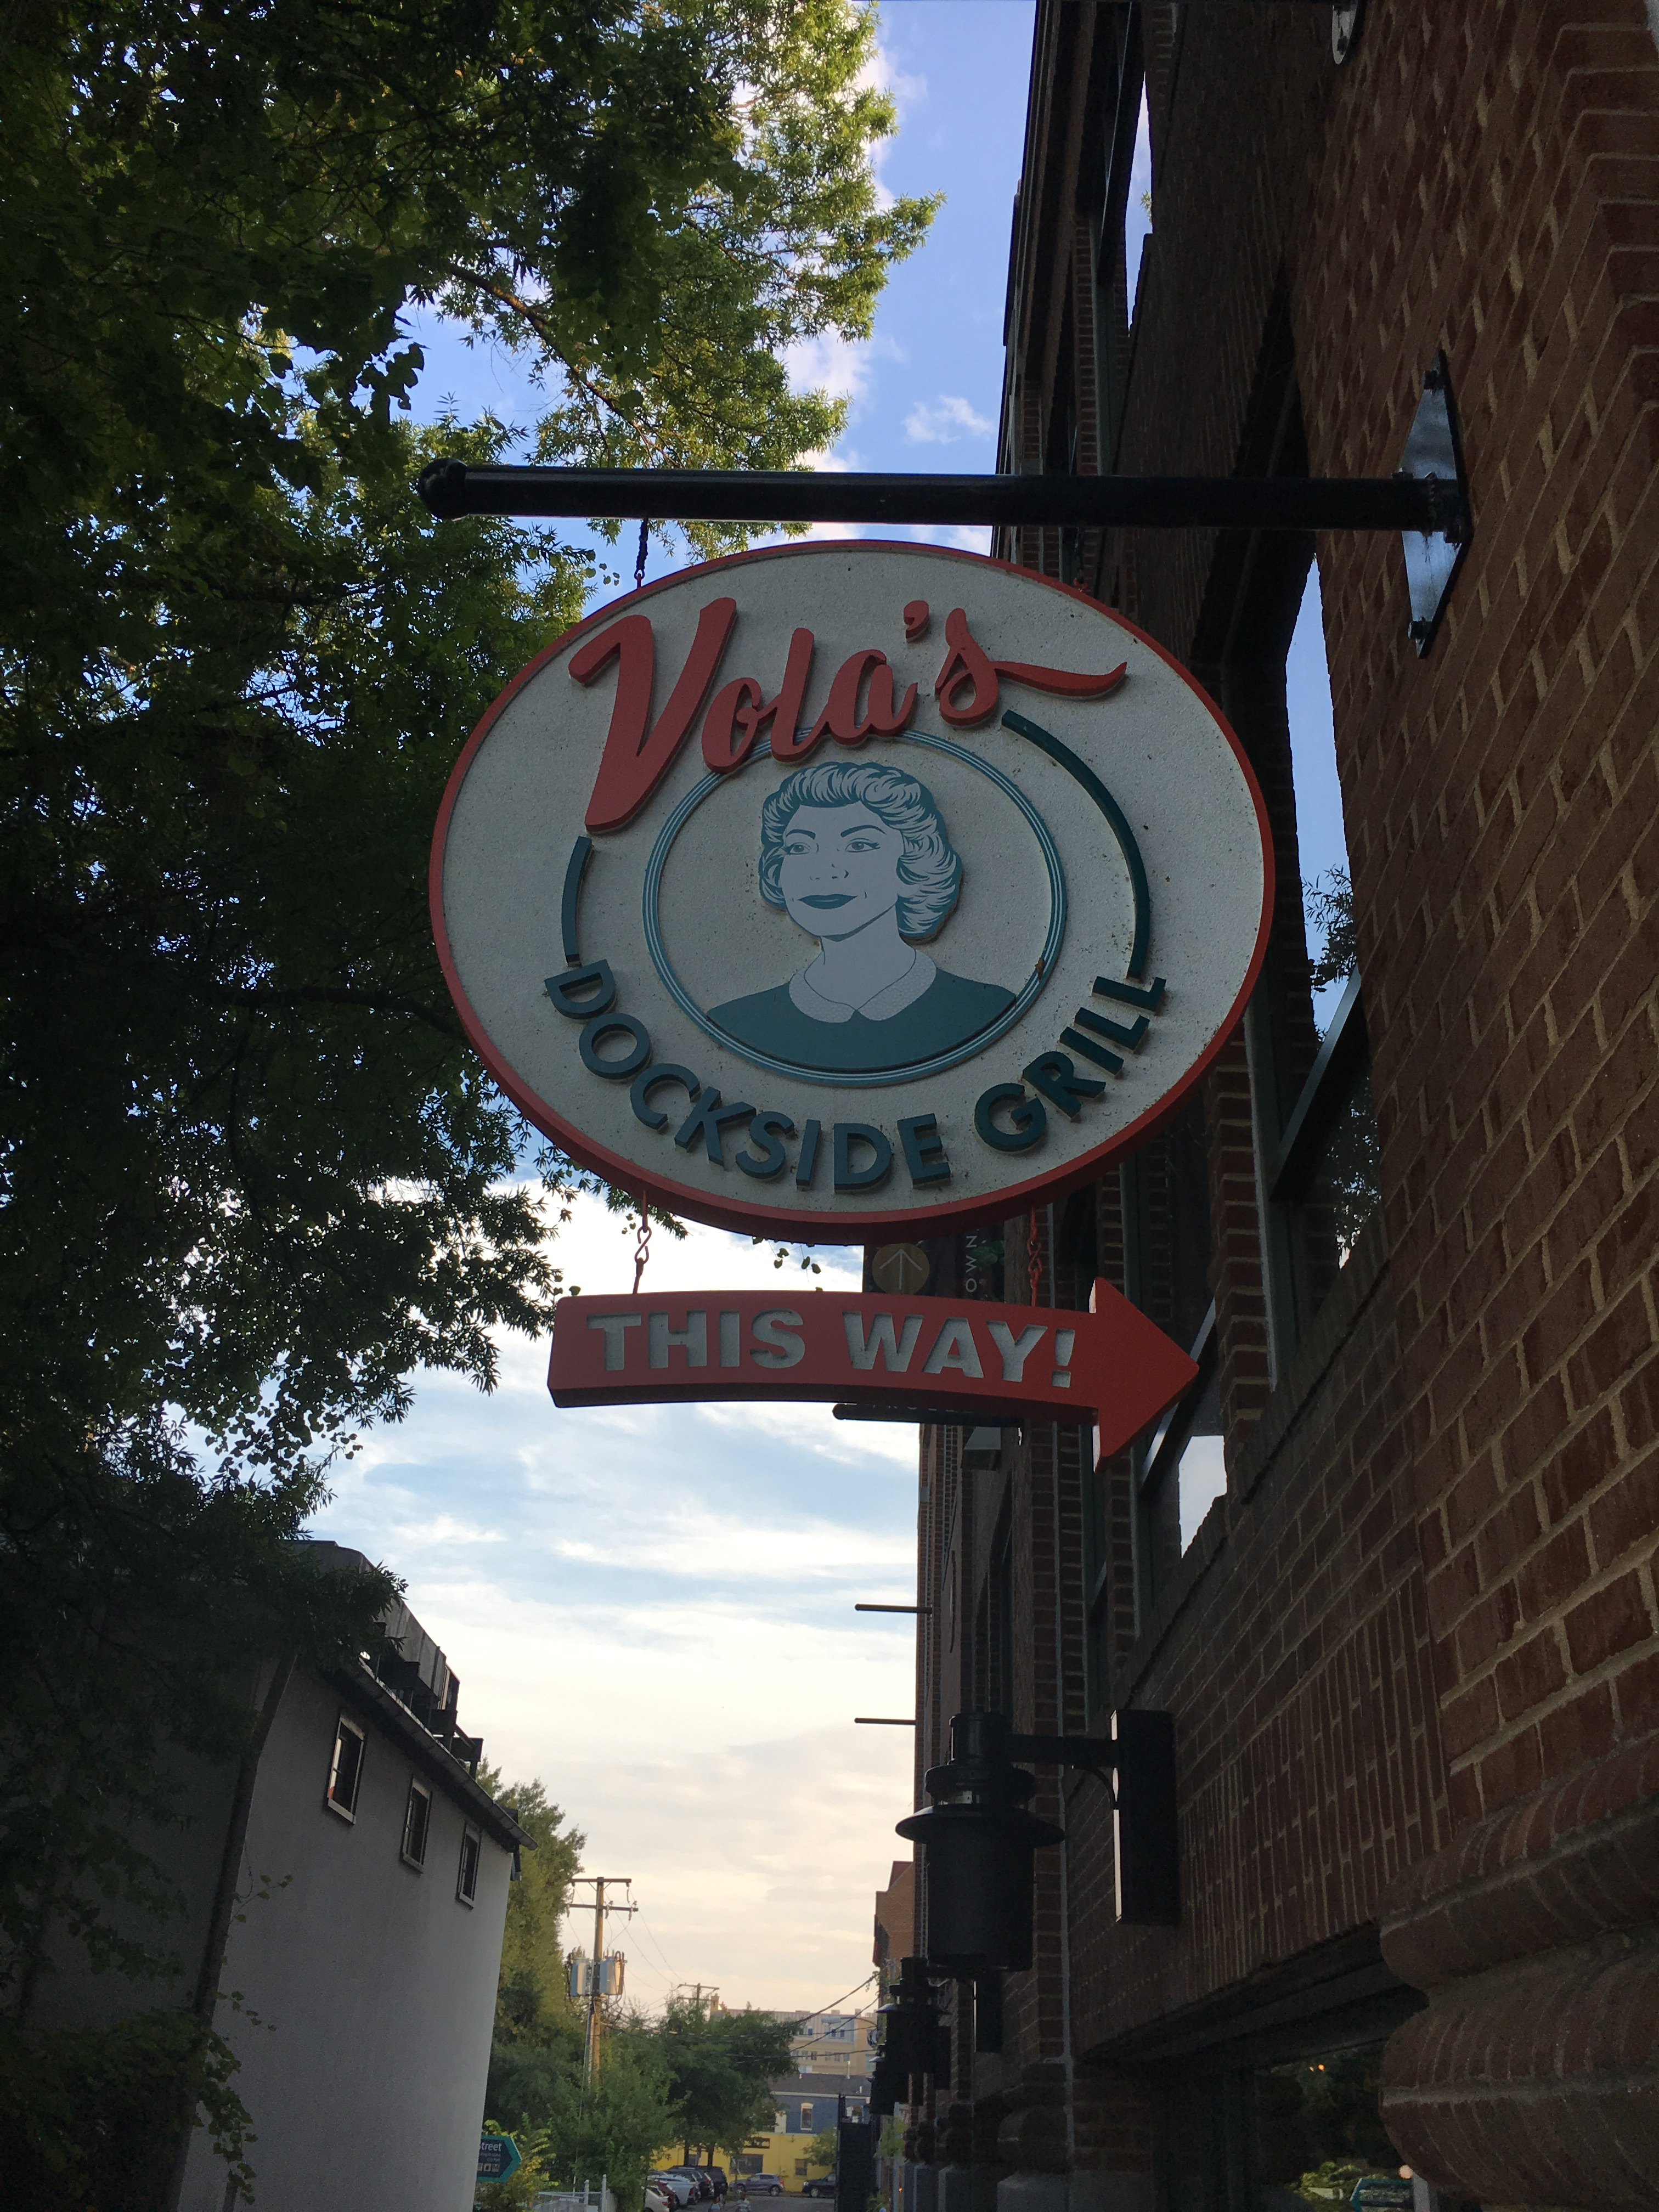 Vola's Dockside Grill – Old Town Waterfront Dining